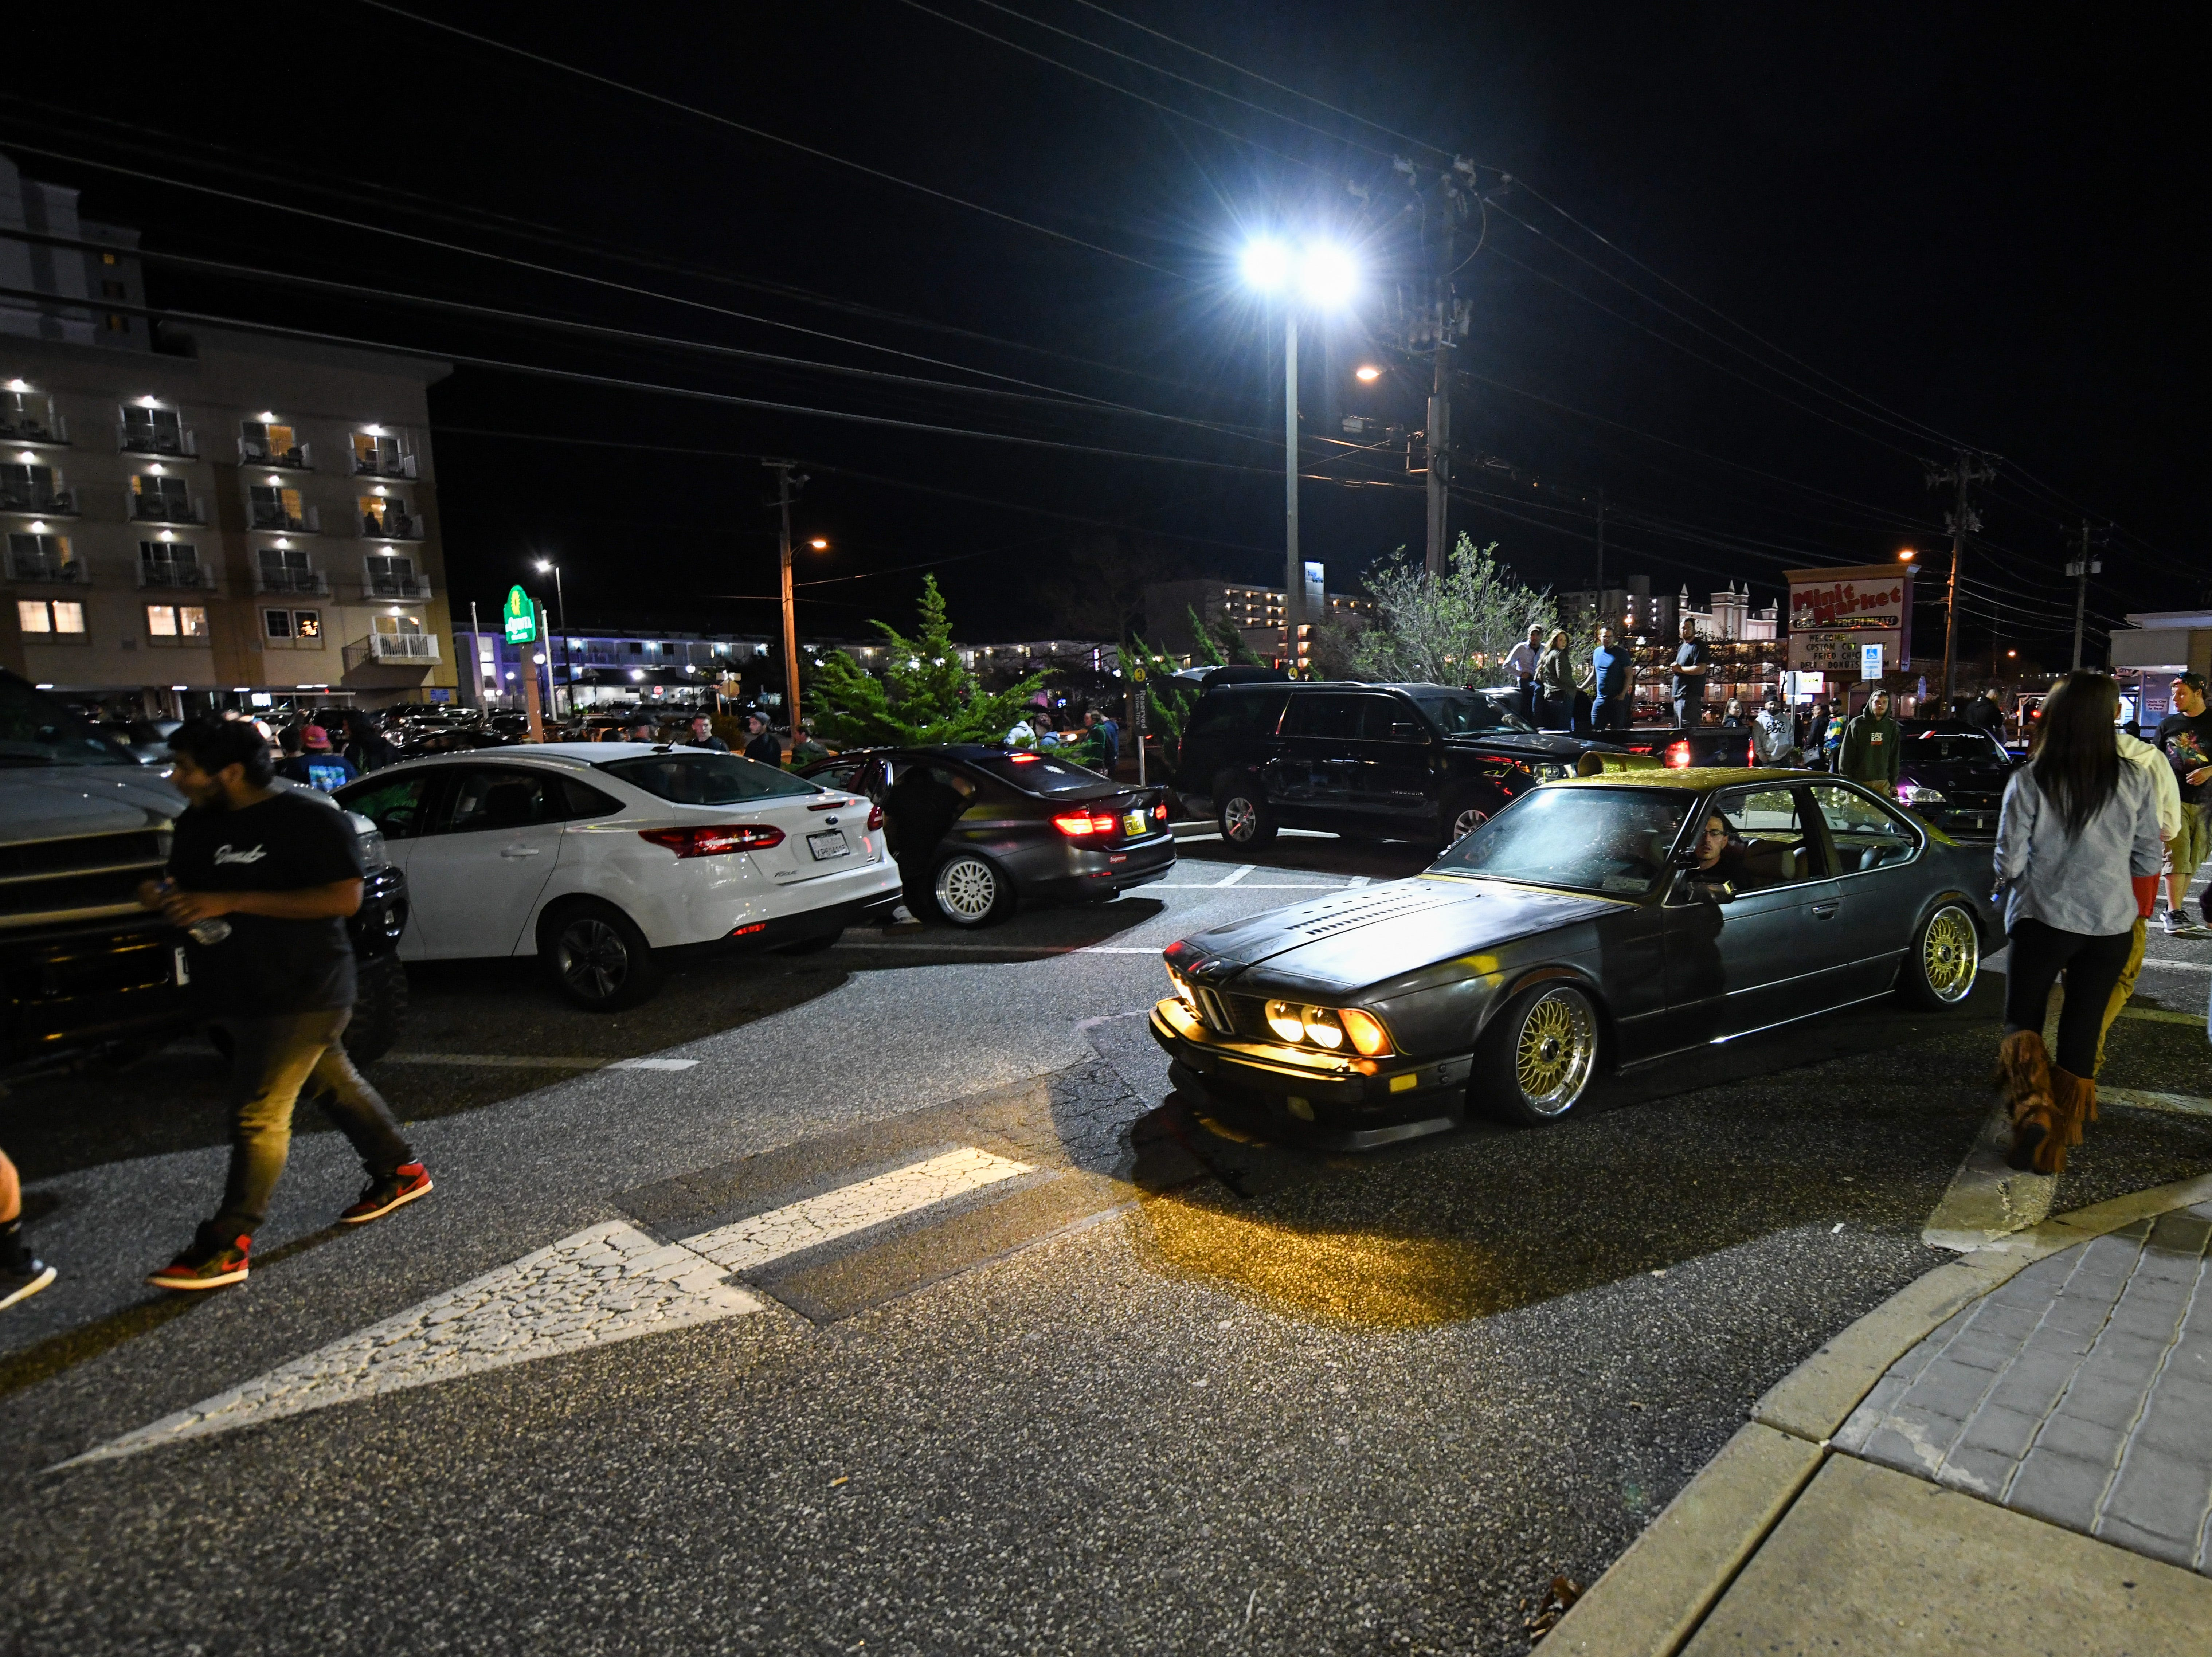 The streets of Ocean City were full of cars, crowds and a heavy police presence on Friday, Sept 28, 2018. Popular car show H2Oi  was traditionally held nearby and though it has now moved to Atlantic City attendees continue to flock to Ocean City.